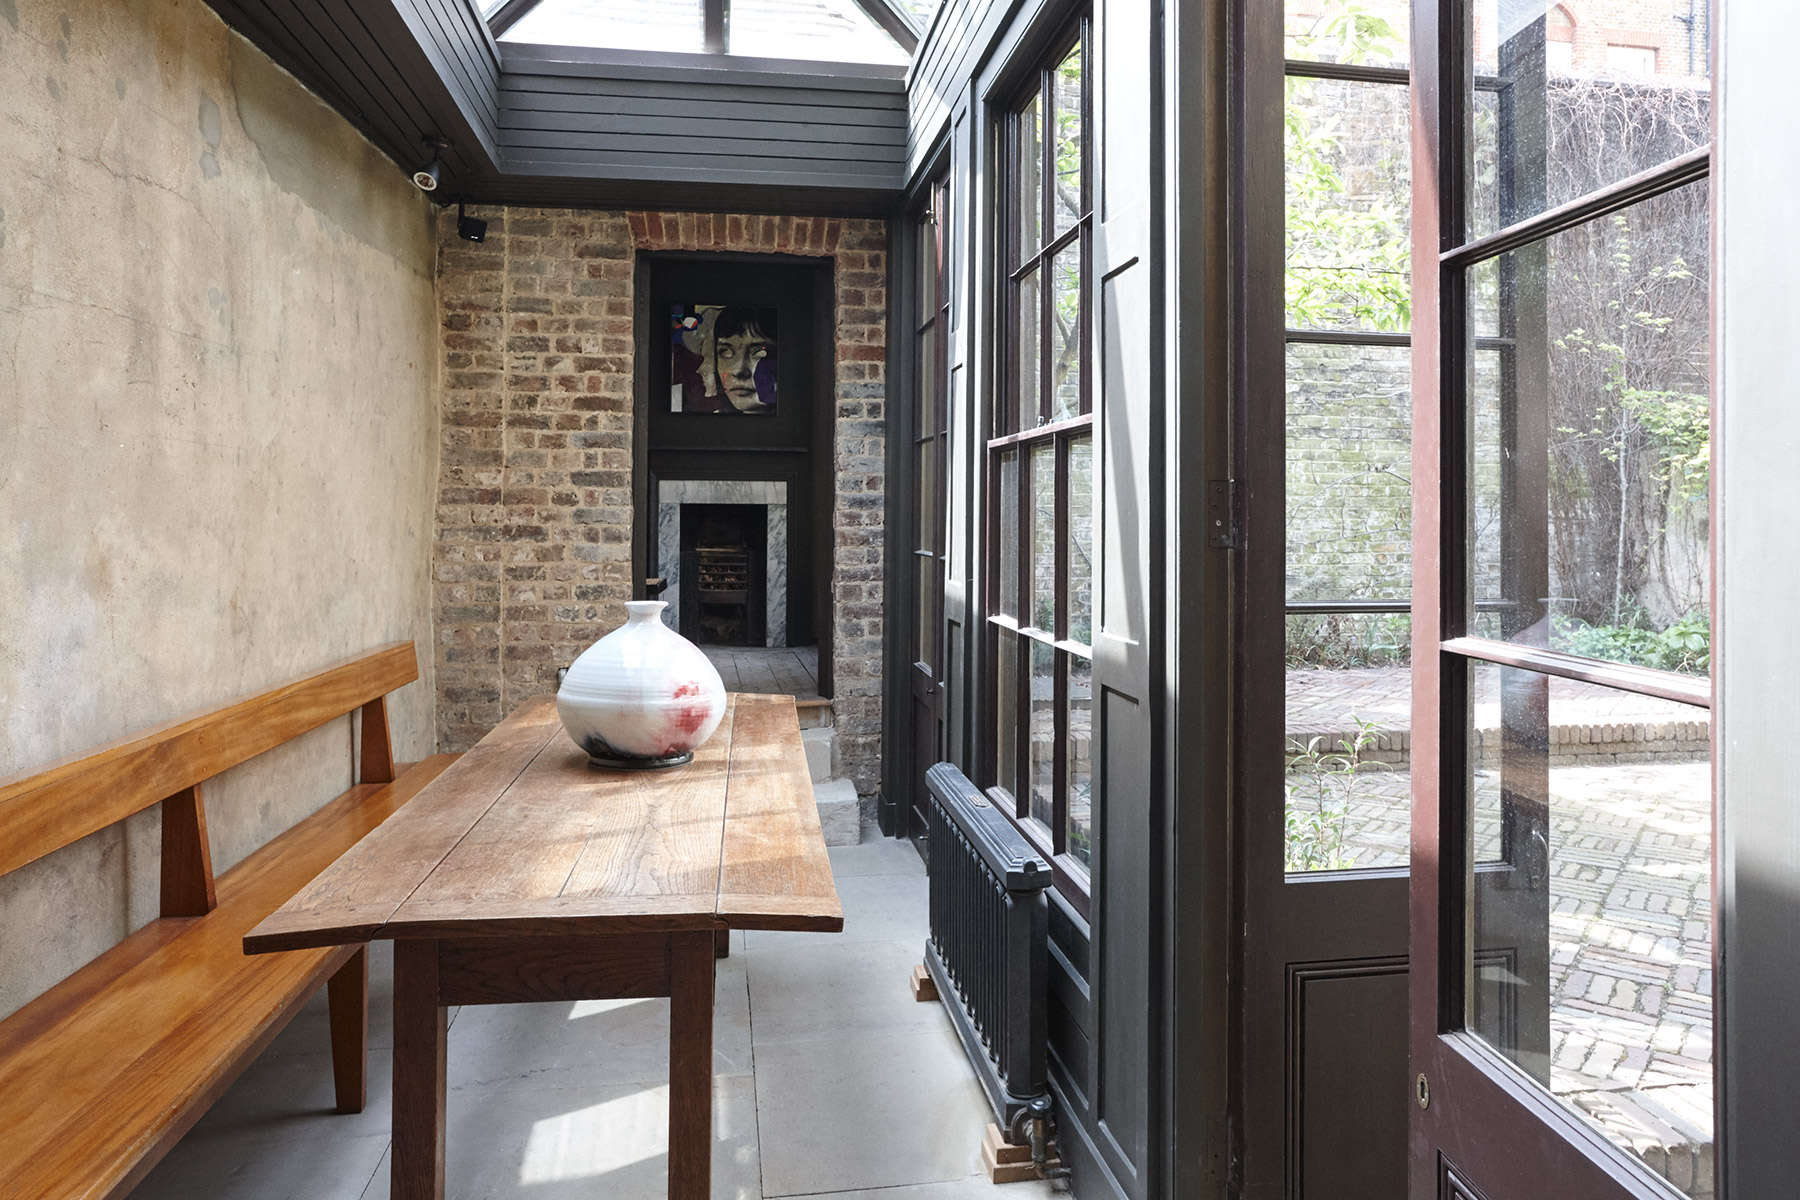 Solarium at The New Road Residence in London, a curated rental house where everything is for sale | Remodelista